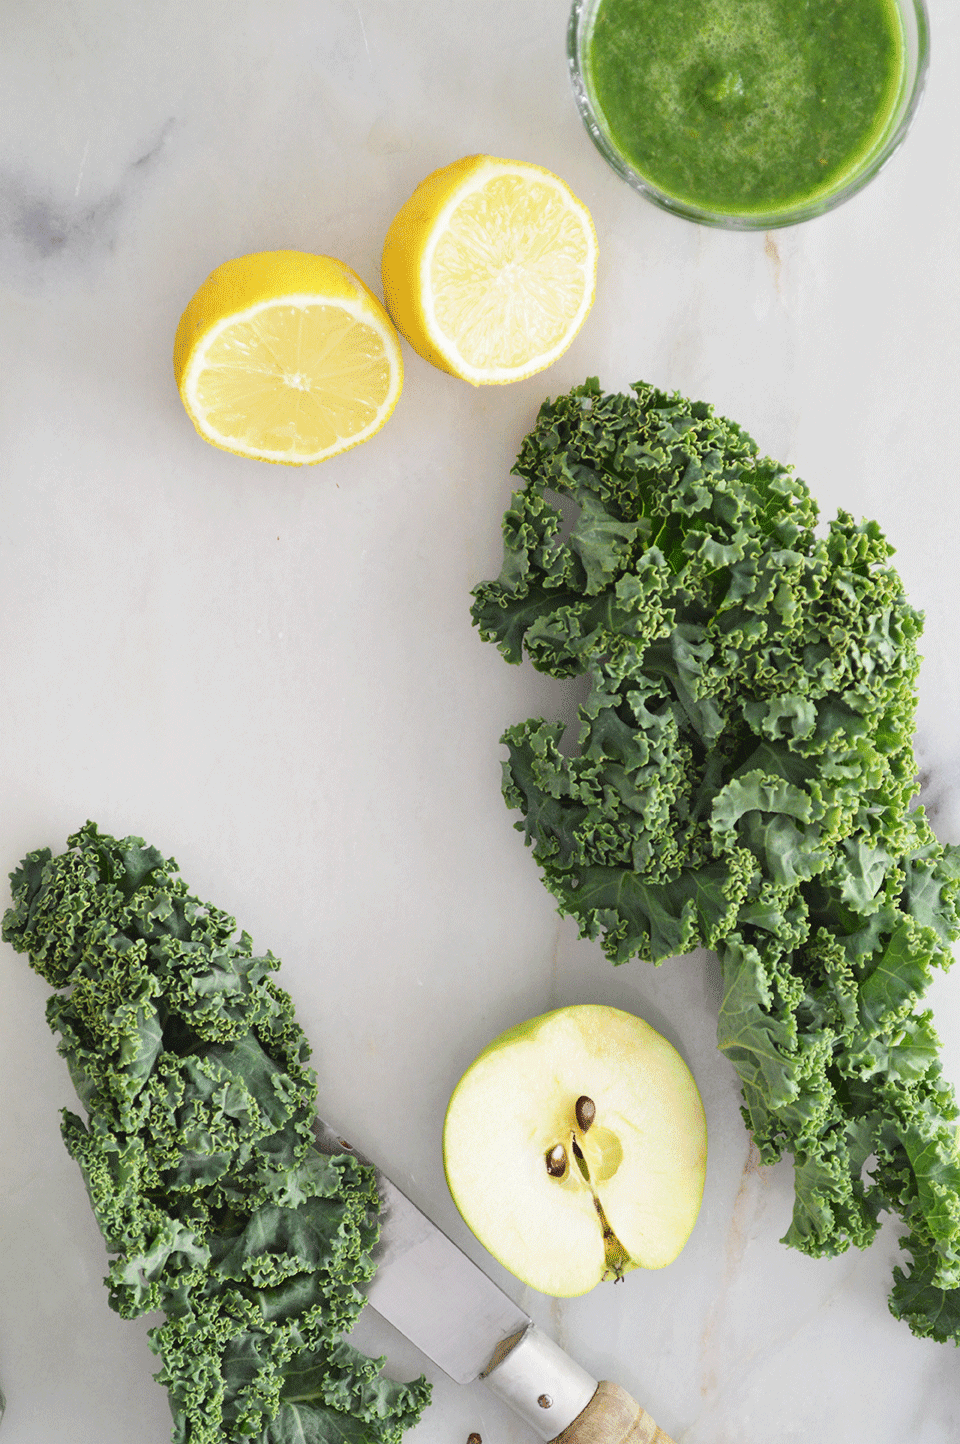 kale-apple-green-smoothie-recipe